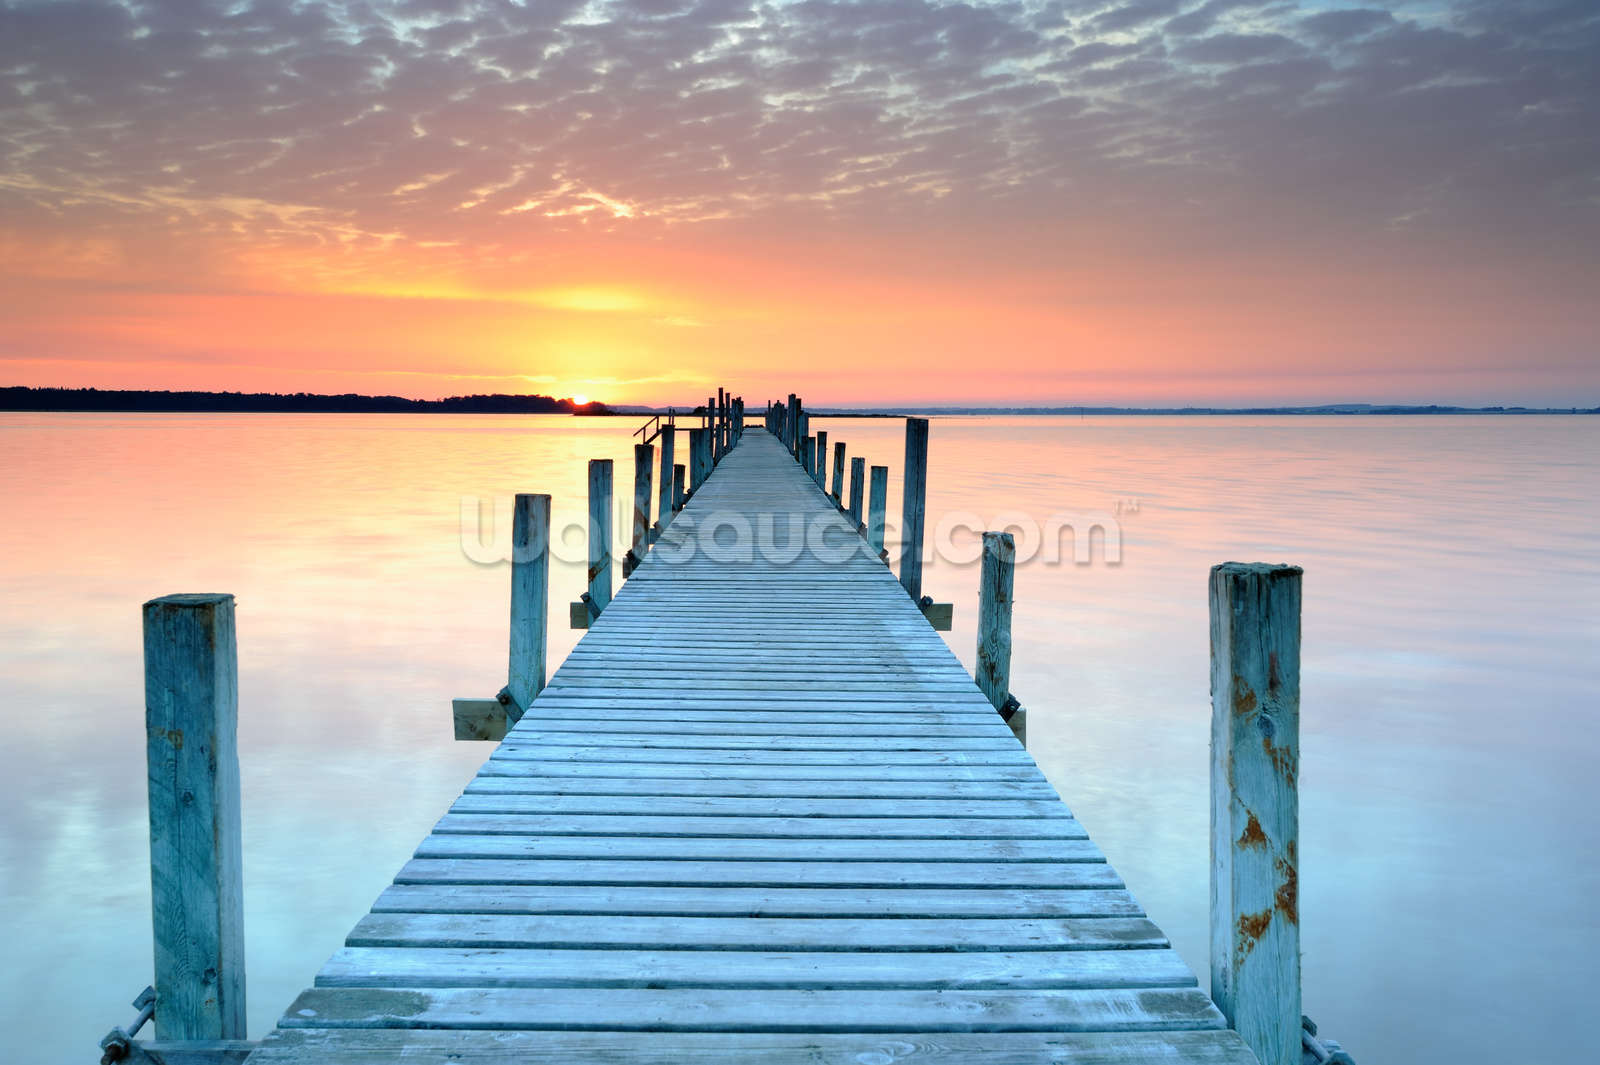 Sunset Jetty Wall Mural Wallpaper